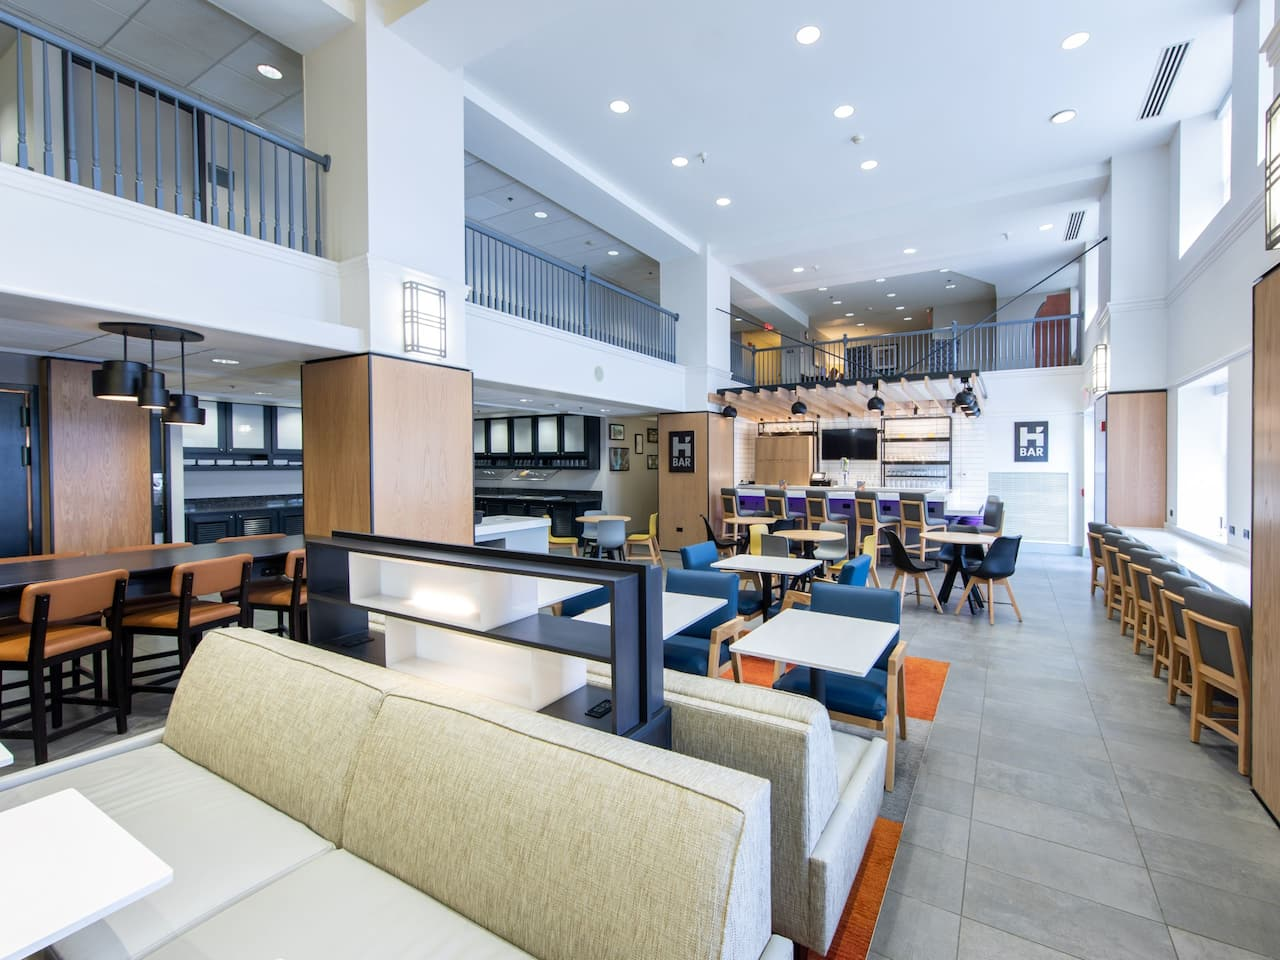 Hyatt House Chicago/Schaumburg Lobby Kitchen Seating